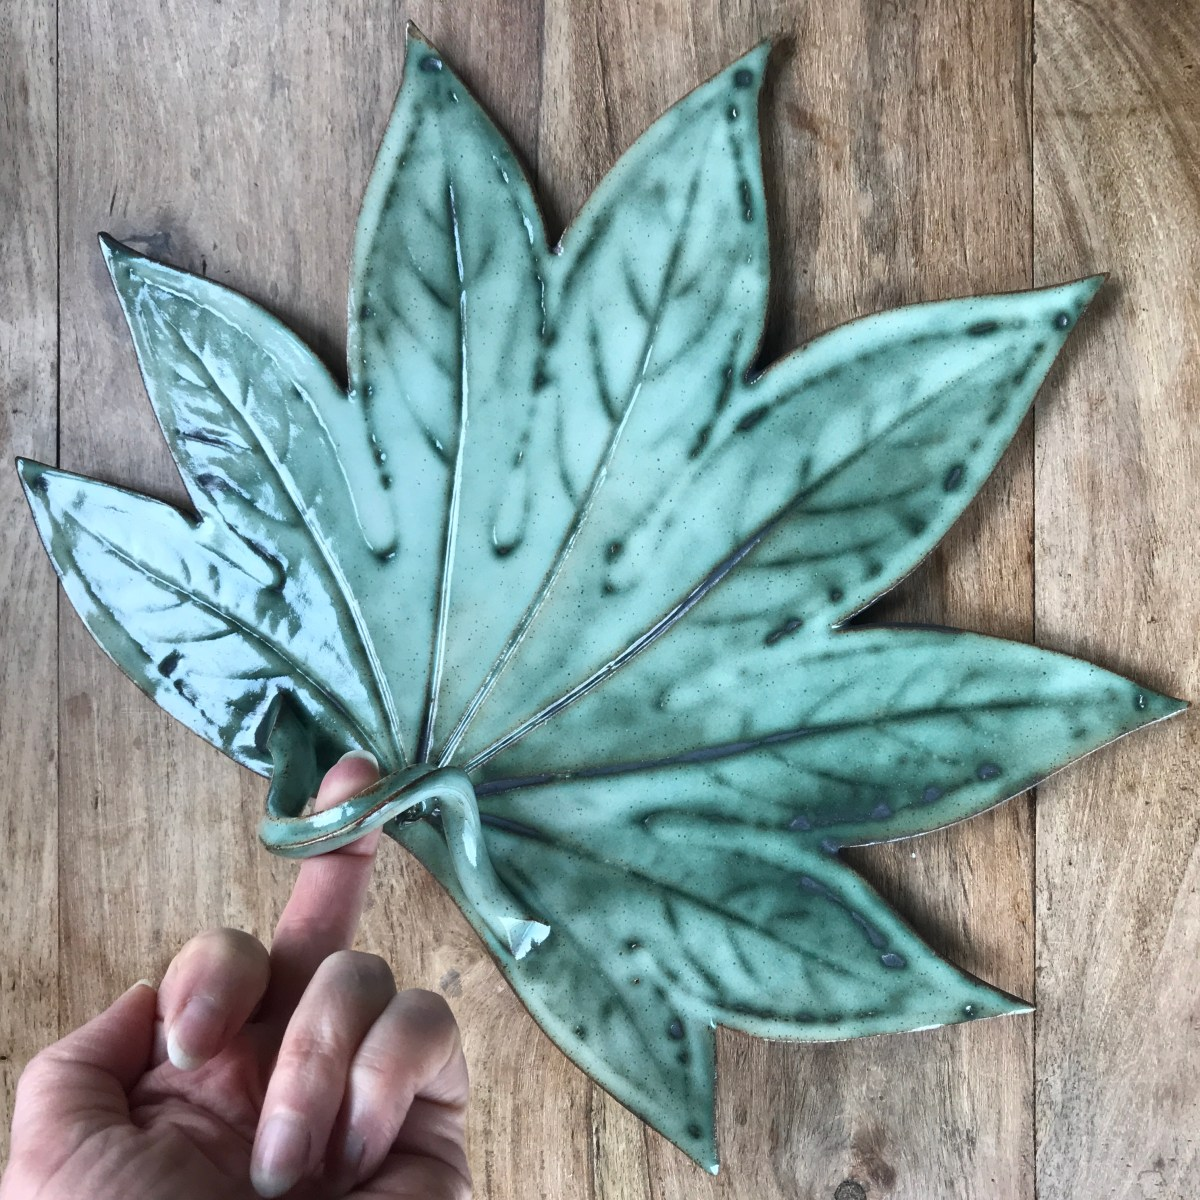 Fatsia Leaf Sharing Platter by Sonya Ceramic art - Ceramics Inspired by Nature (size context with hand)